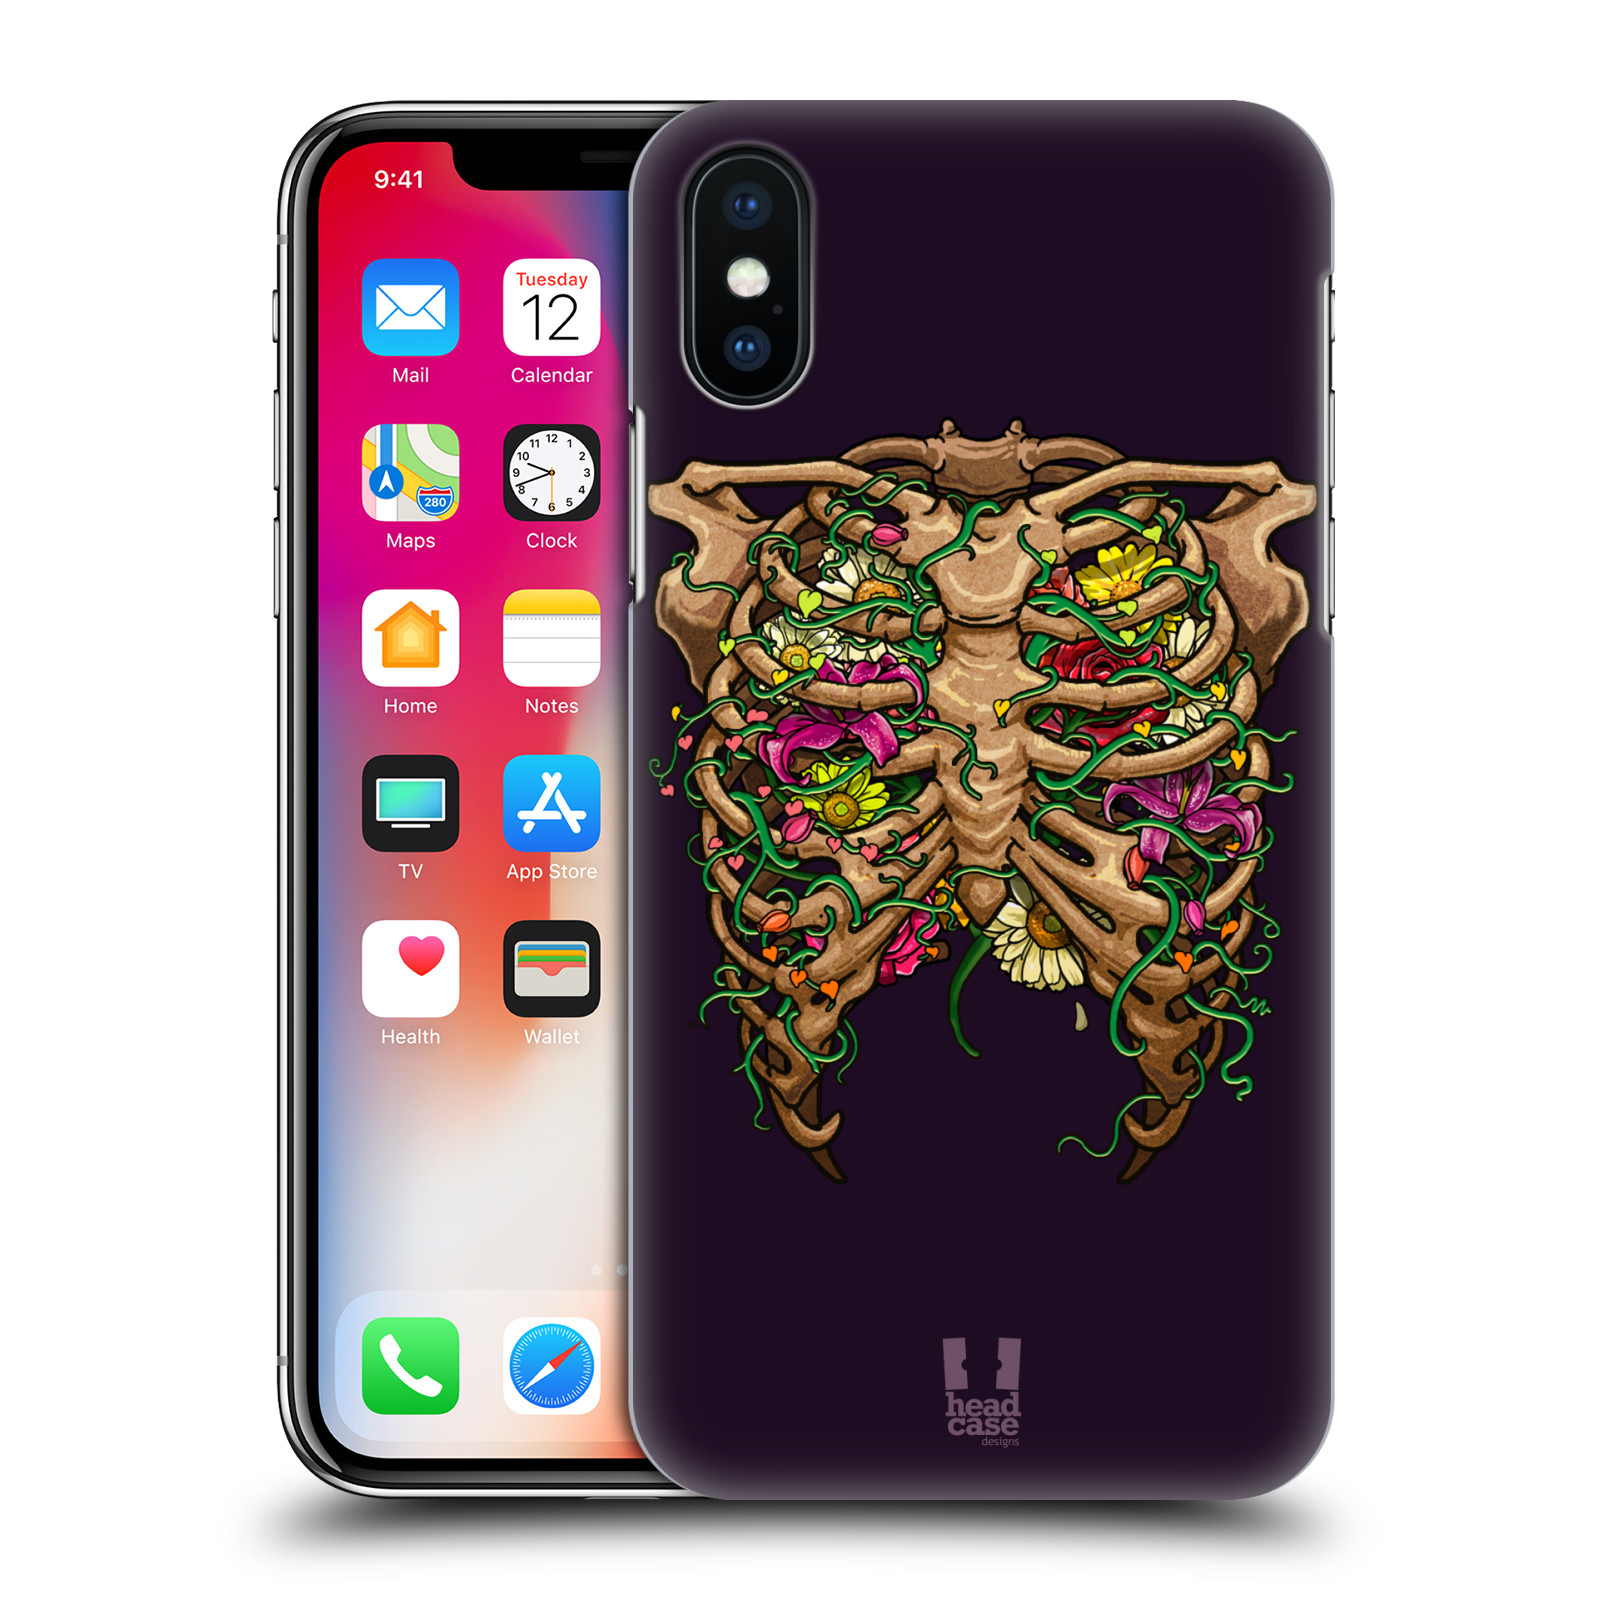 HEAD-CASE-DESIGNS-HUMAN-ANATOMY-HARD-BACK-CASE-FOR-APPLE-iPHONE-PHONES